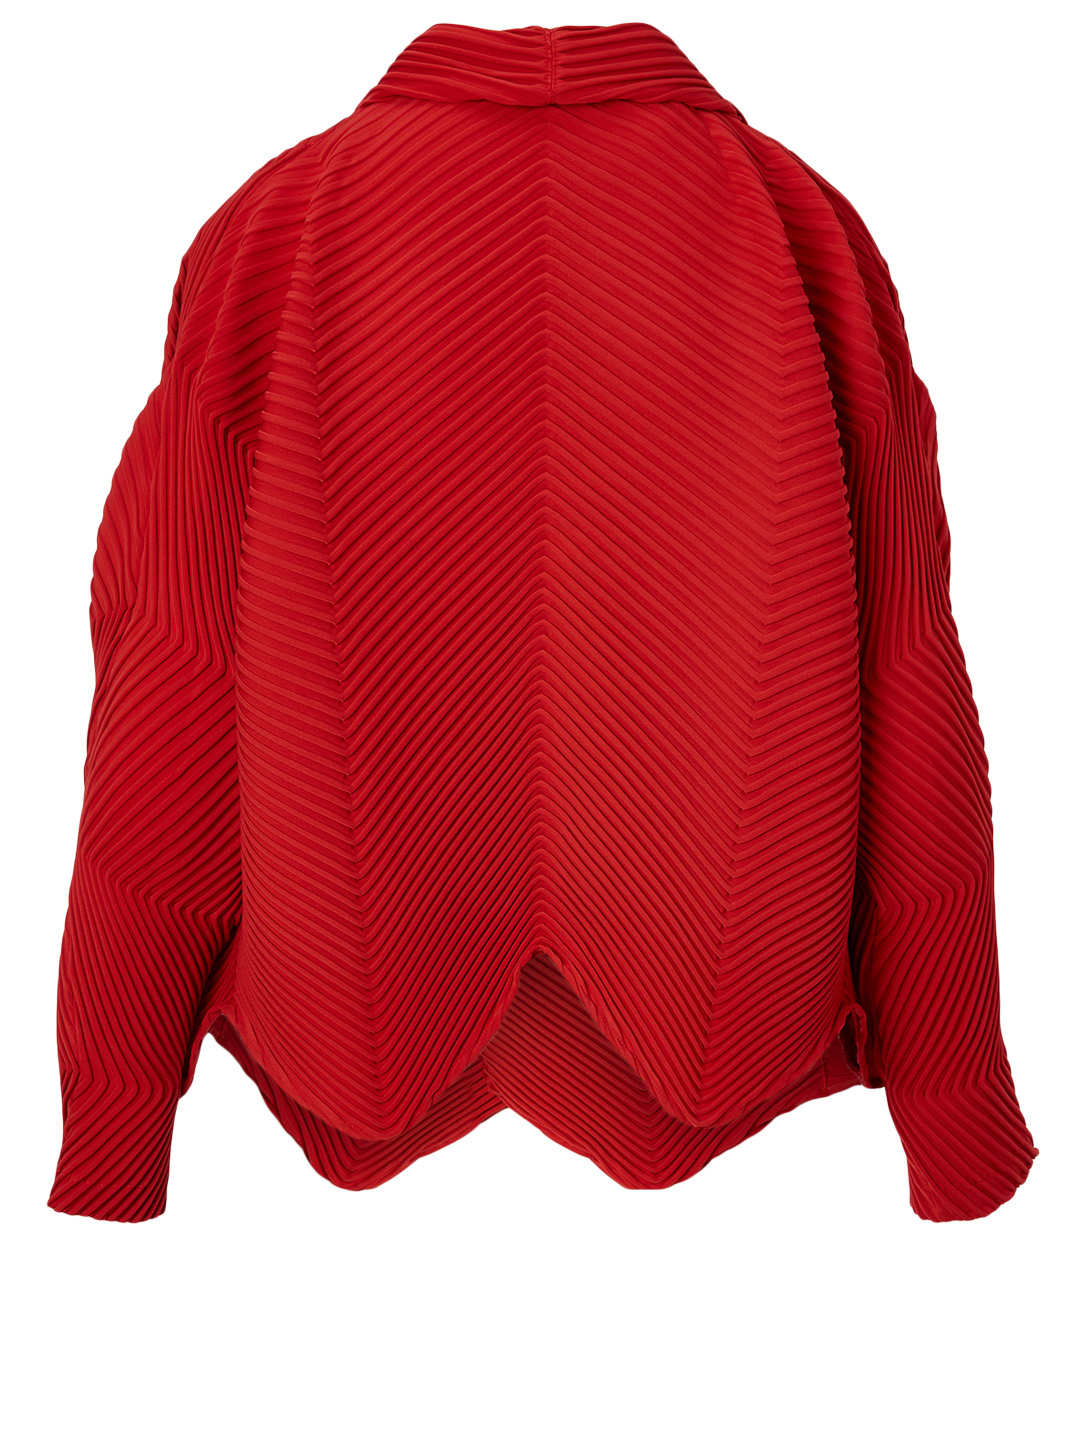 ISSEY MIYAKE Pleated Jacket Women's Red